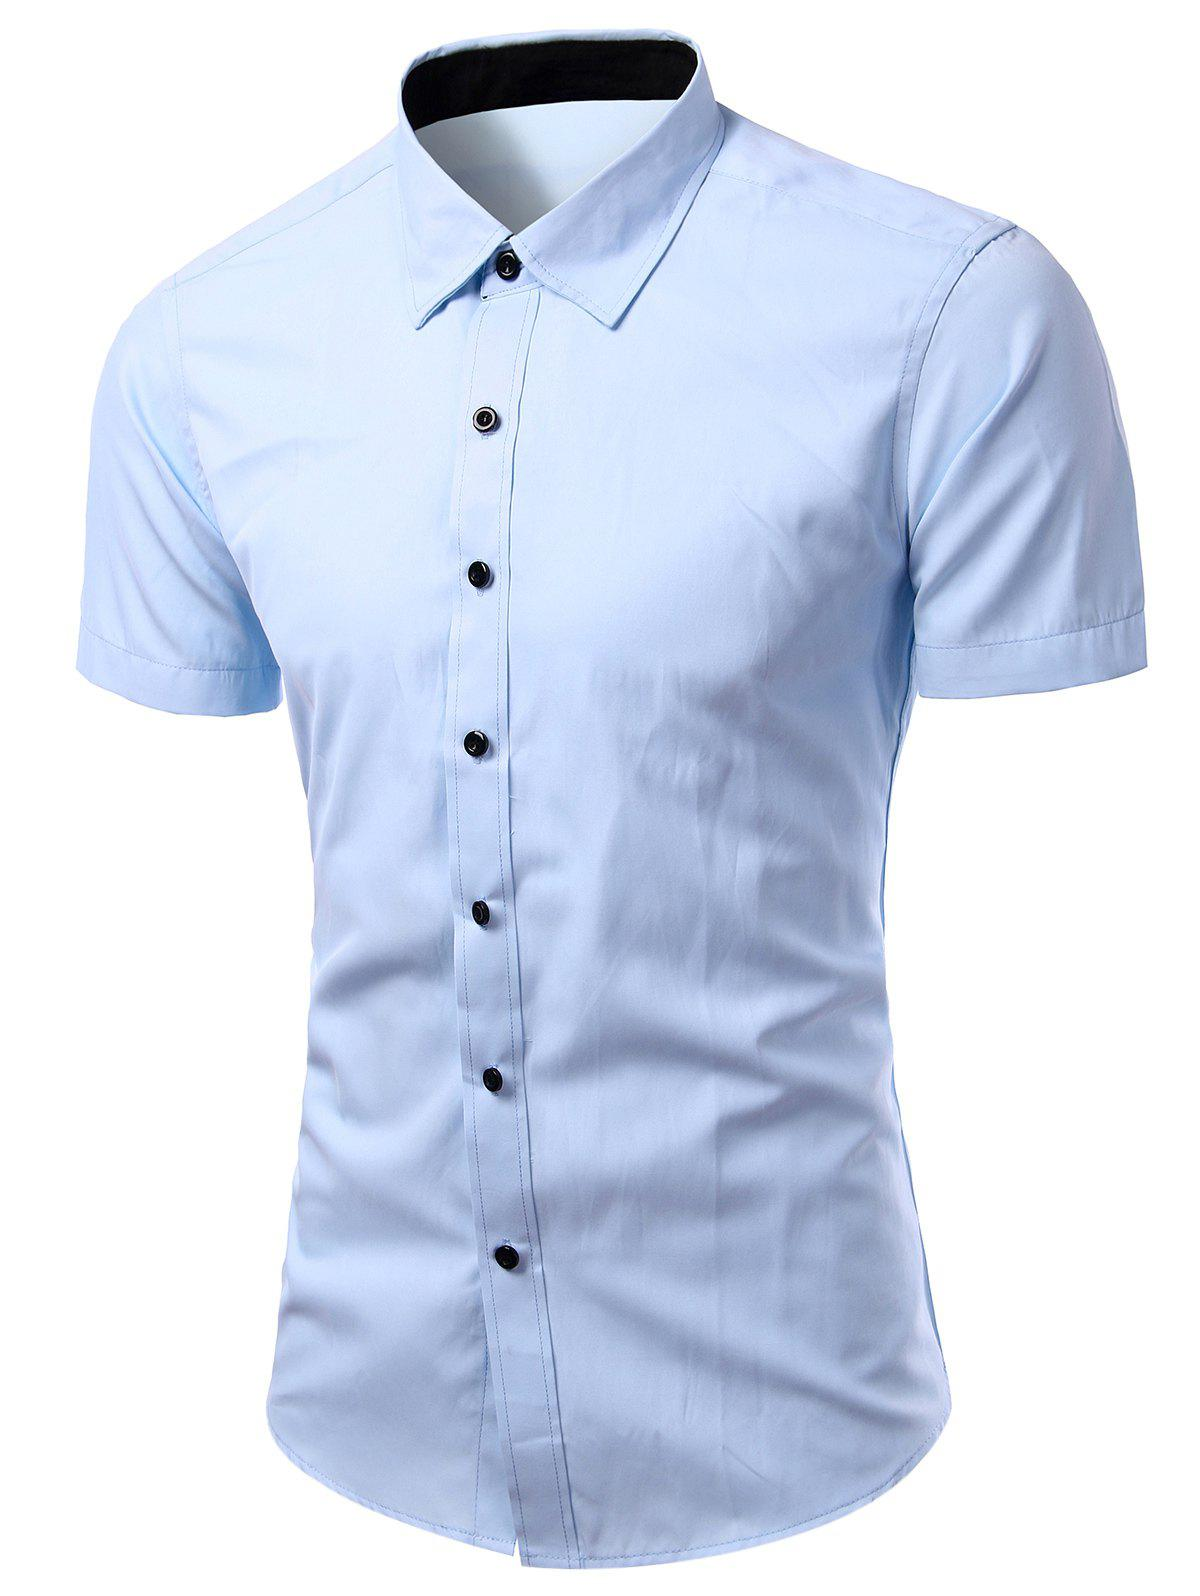 Simple Turn-Down Collar Solid Color Short Sleeve Shirt For Men